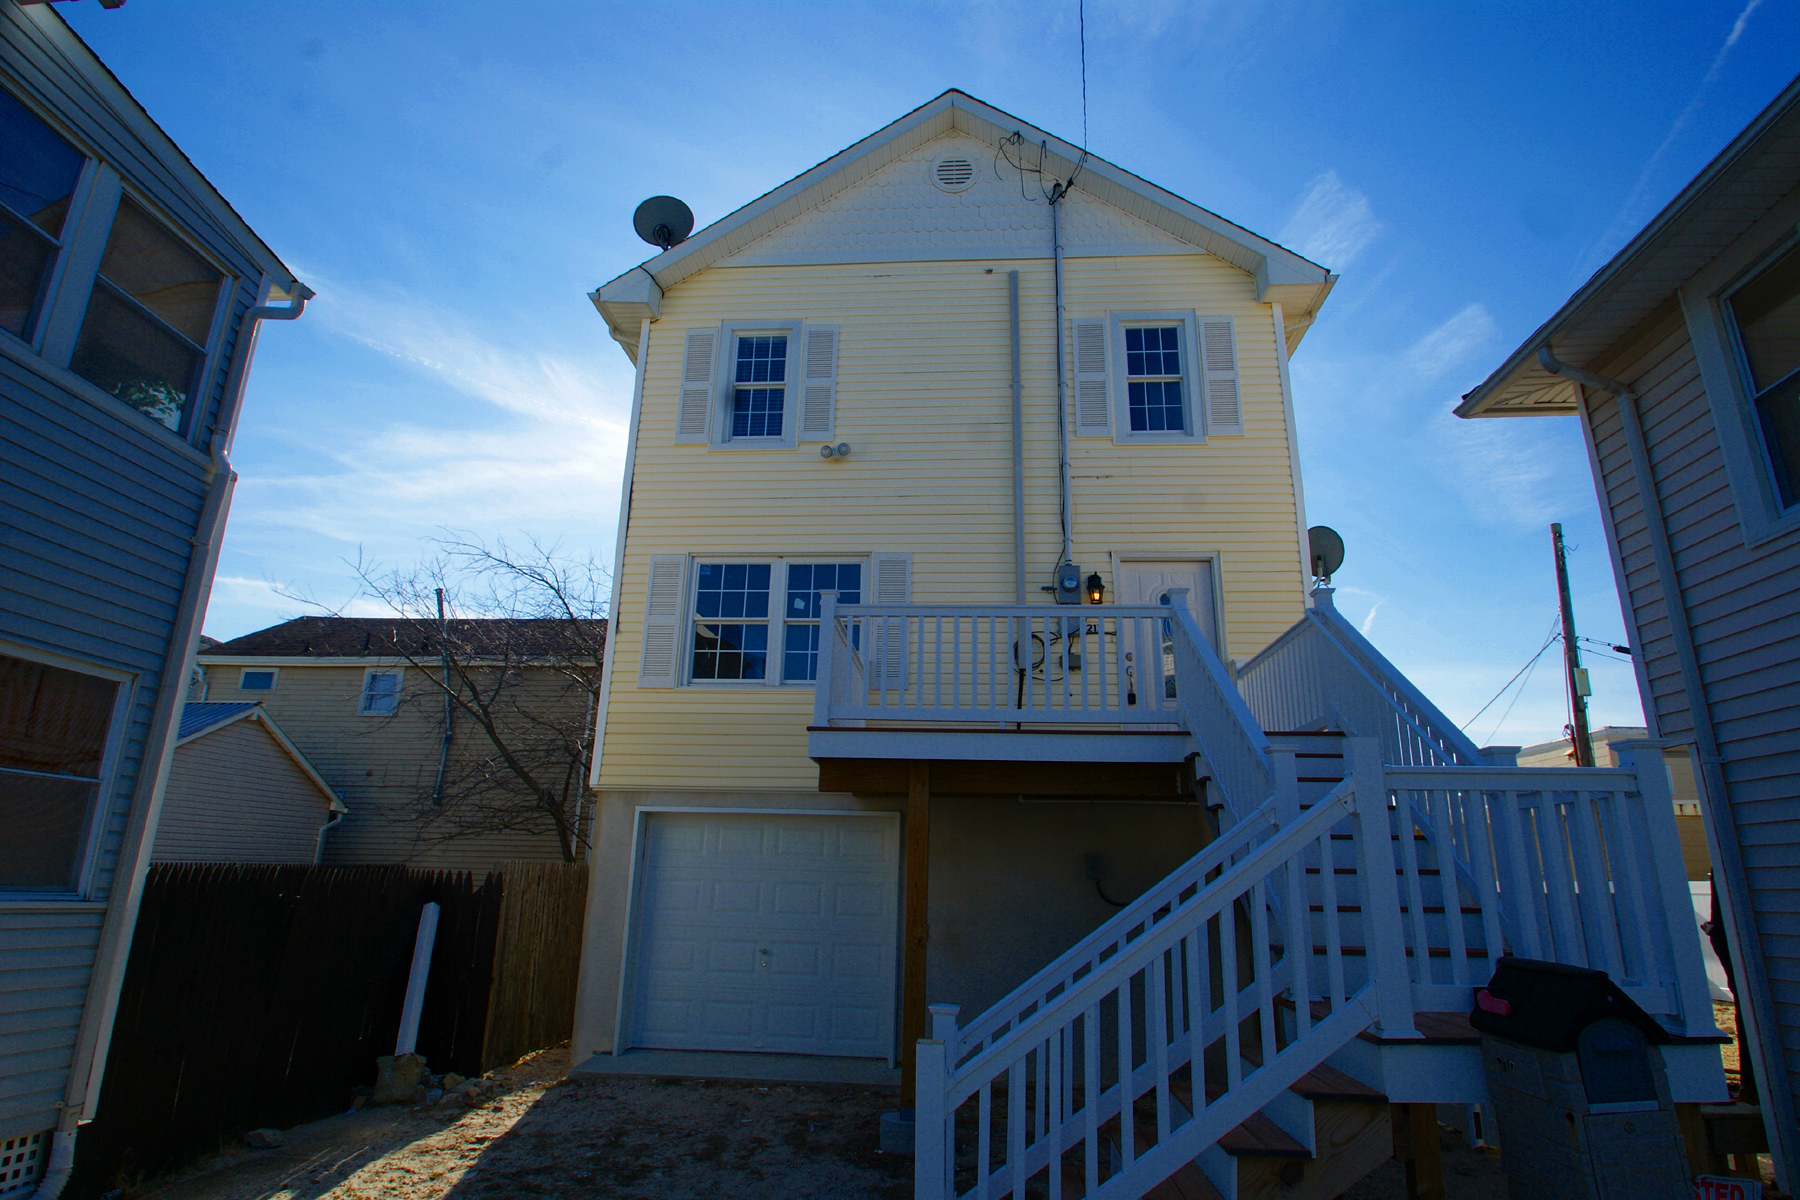 独户住宅 为 销售 在 Exceptional Remodeled Raised Home 217 Webster Avenue Seaside Heights, 08751 美国